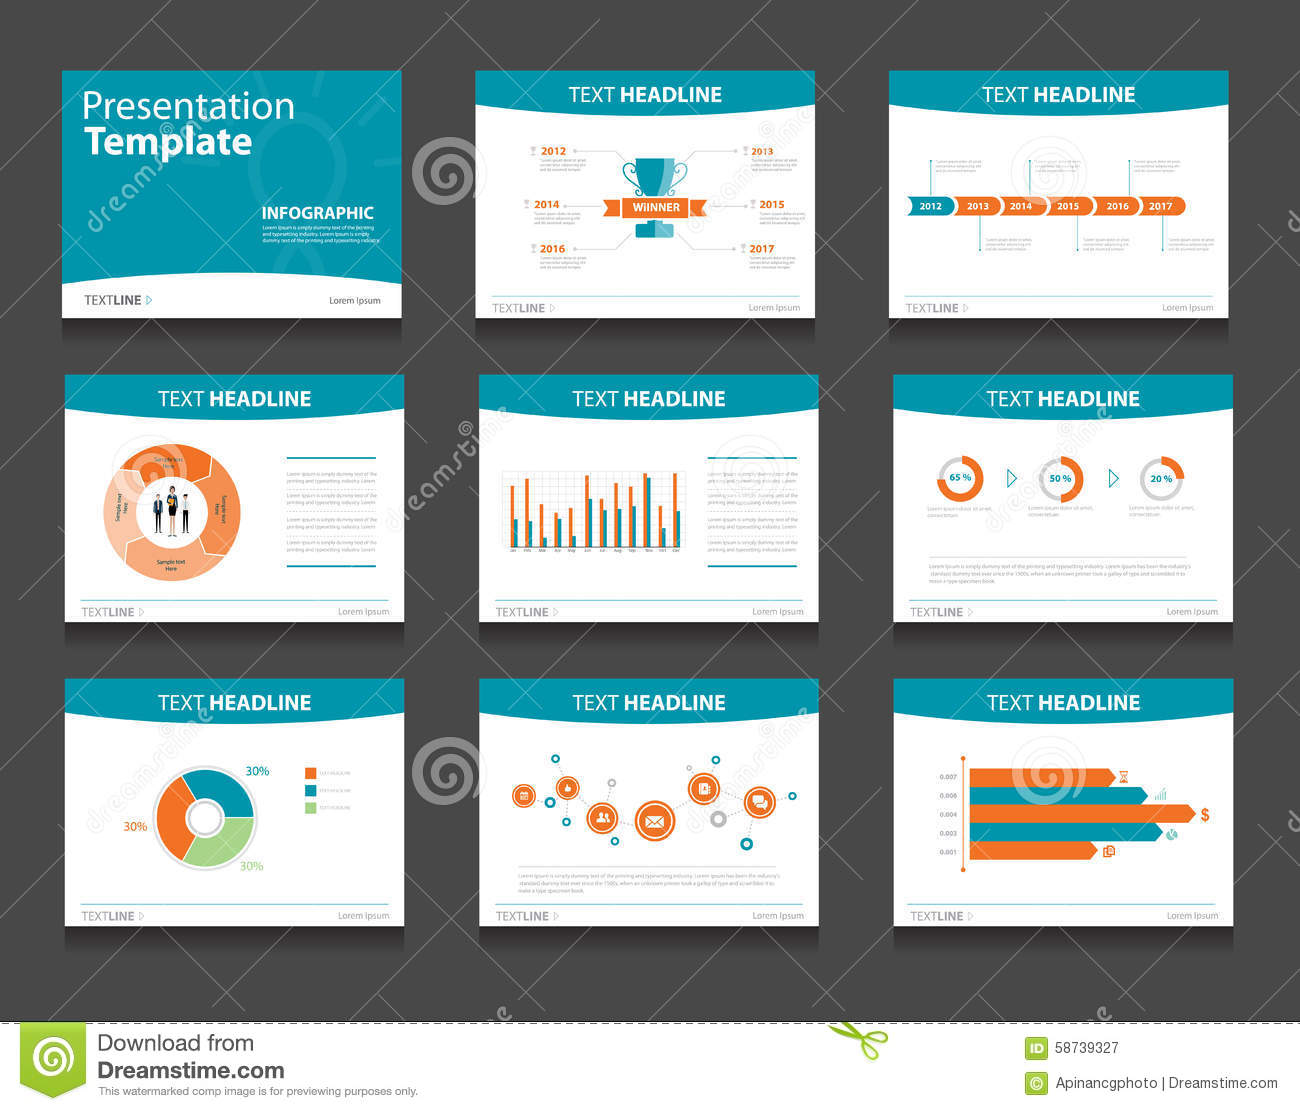 powerpoint presentation template designs - hola.klonec.co, Powerpoint Template Corporate Presentation, Presentation templates